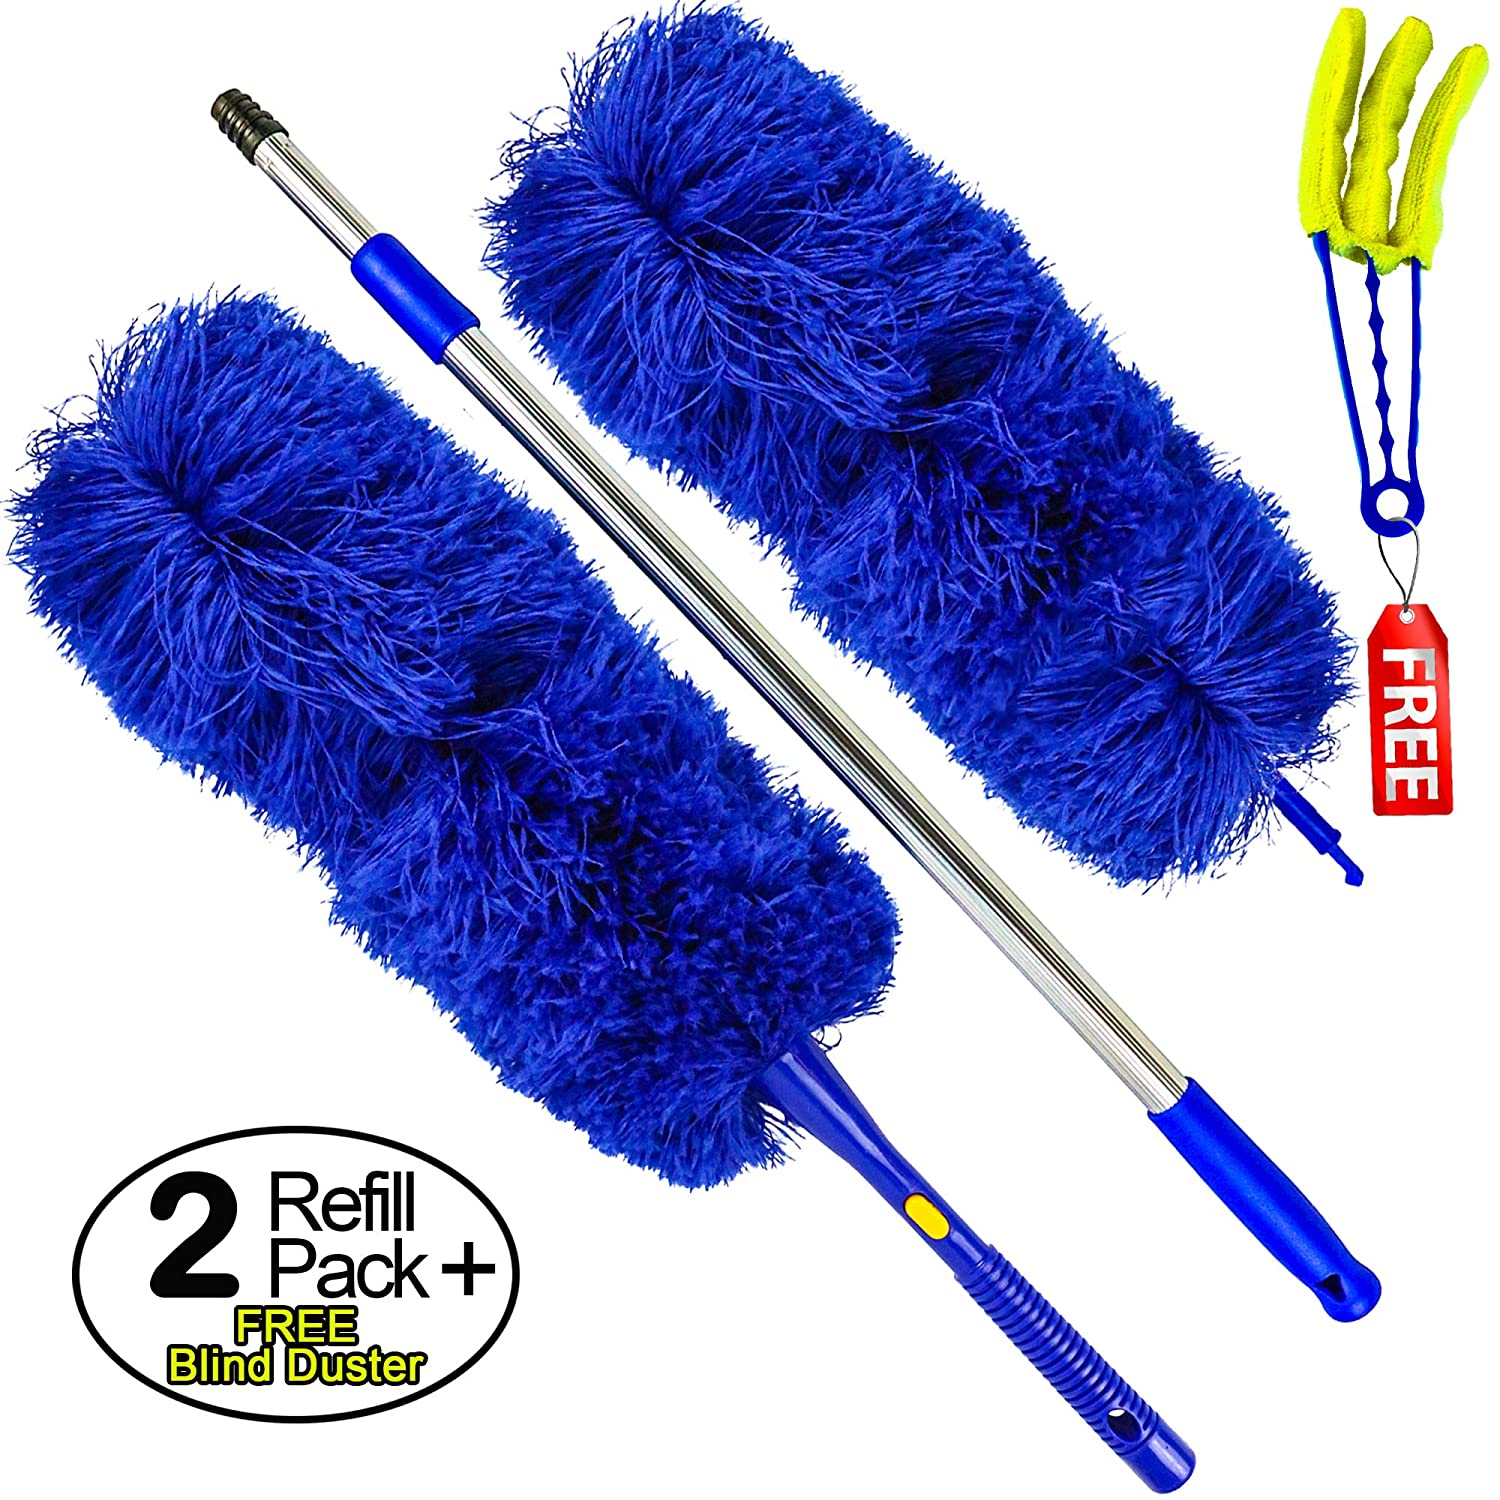 Temples Pride Microfiber Hand Duster with Extendable High Reach Extension Pole | Washable Feather Alternative for Ceiling, Fans, Cobweb Remover, Blinds, Limited Time Plus Size Bonus Pack Offer